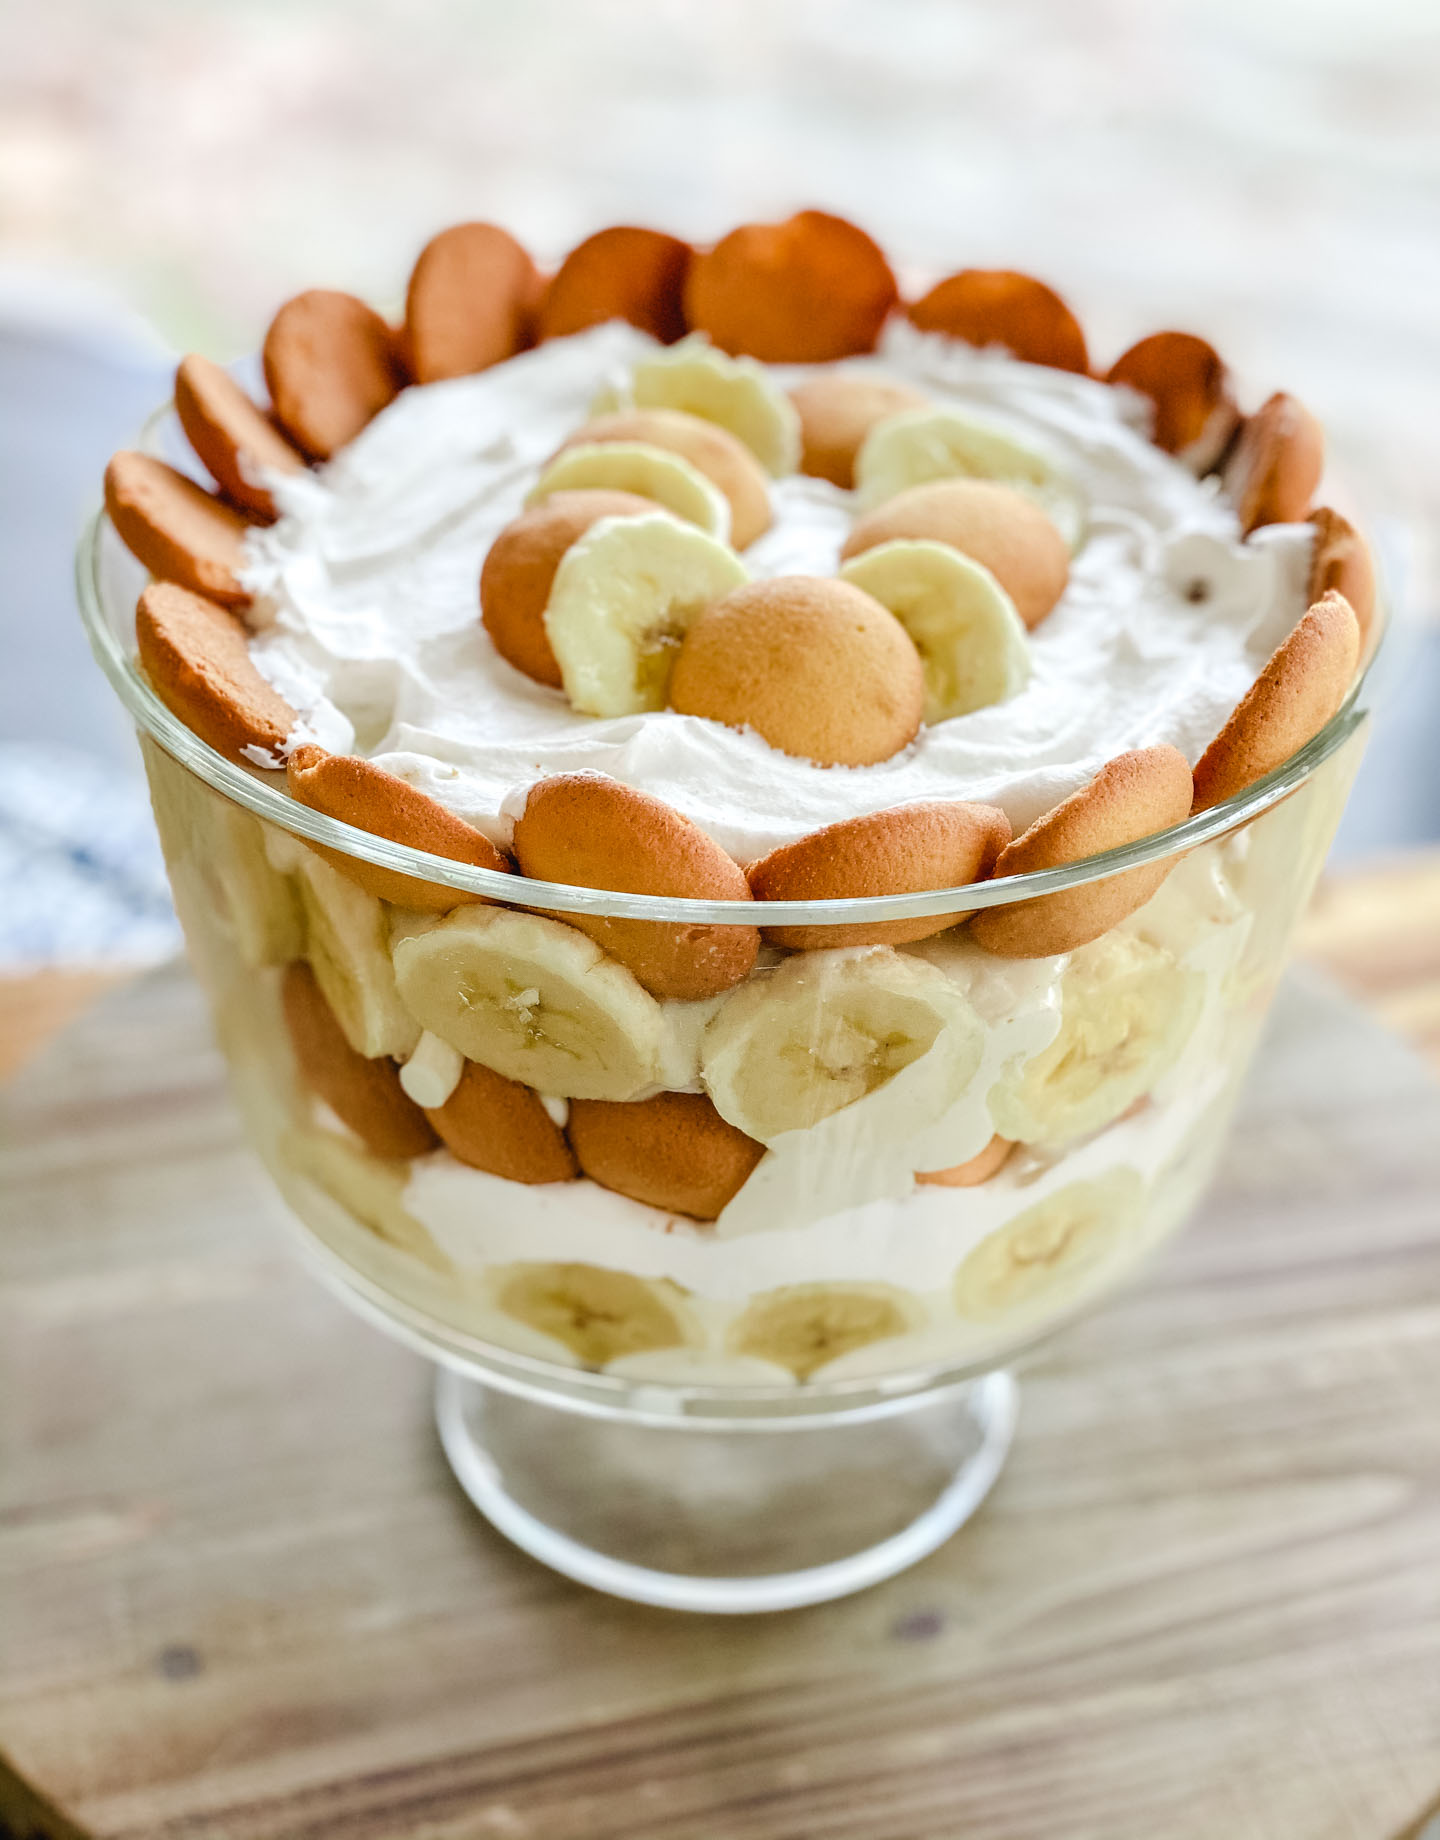 Bananas, cookies, pudding, and whipped cream in a glass bowl